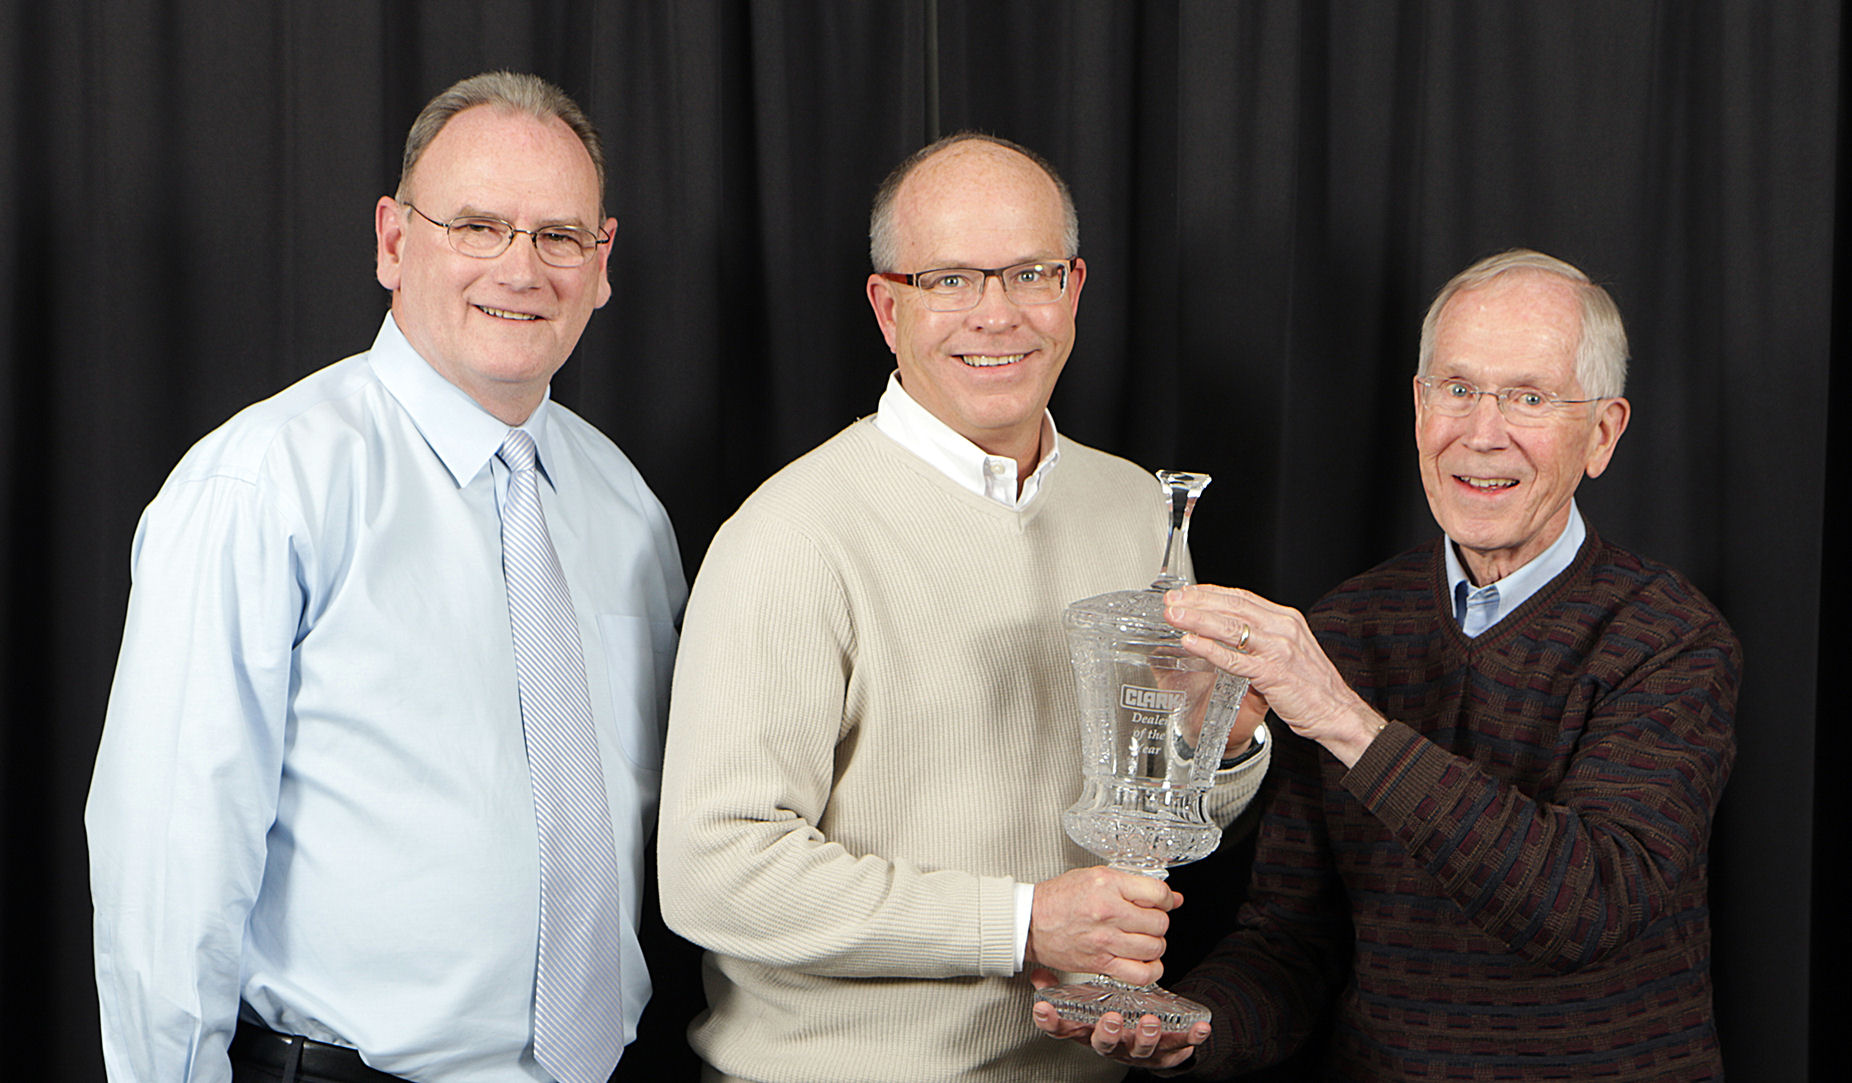 Forklifts of Minnesota named Dealer of the Year